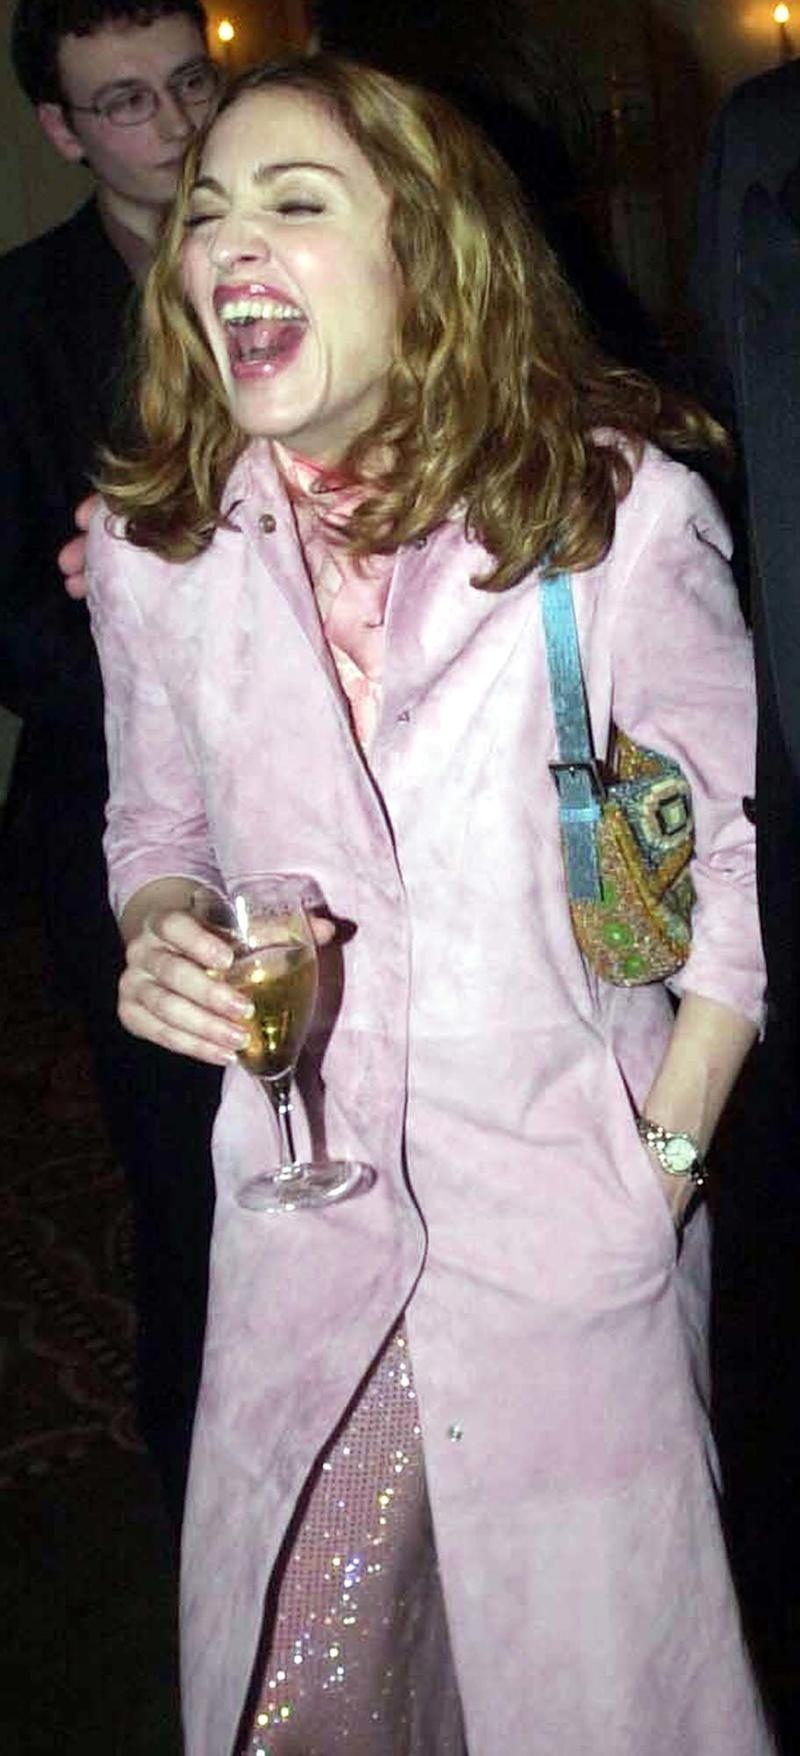 We're not sure what this pink coat is, exactly, but we're glad she's having a nice time wearing it.